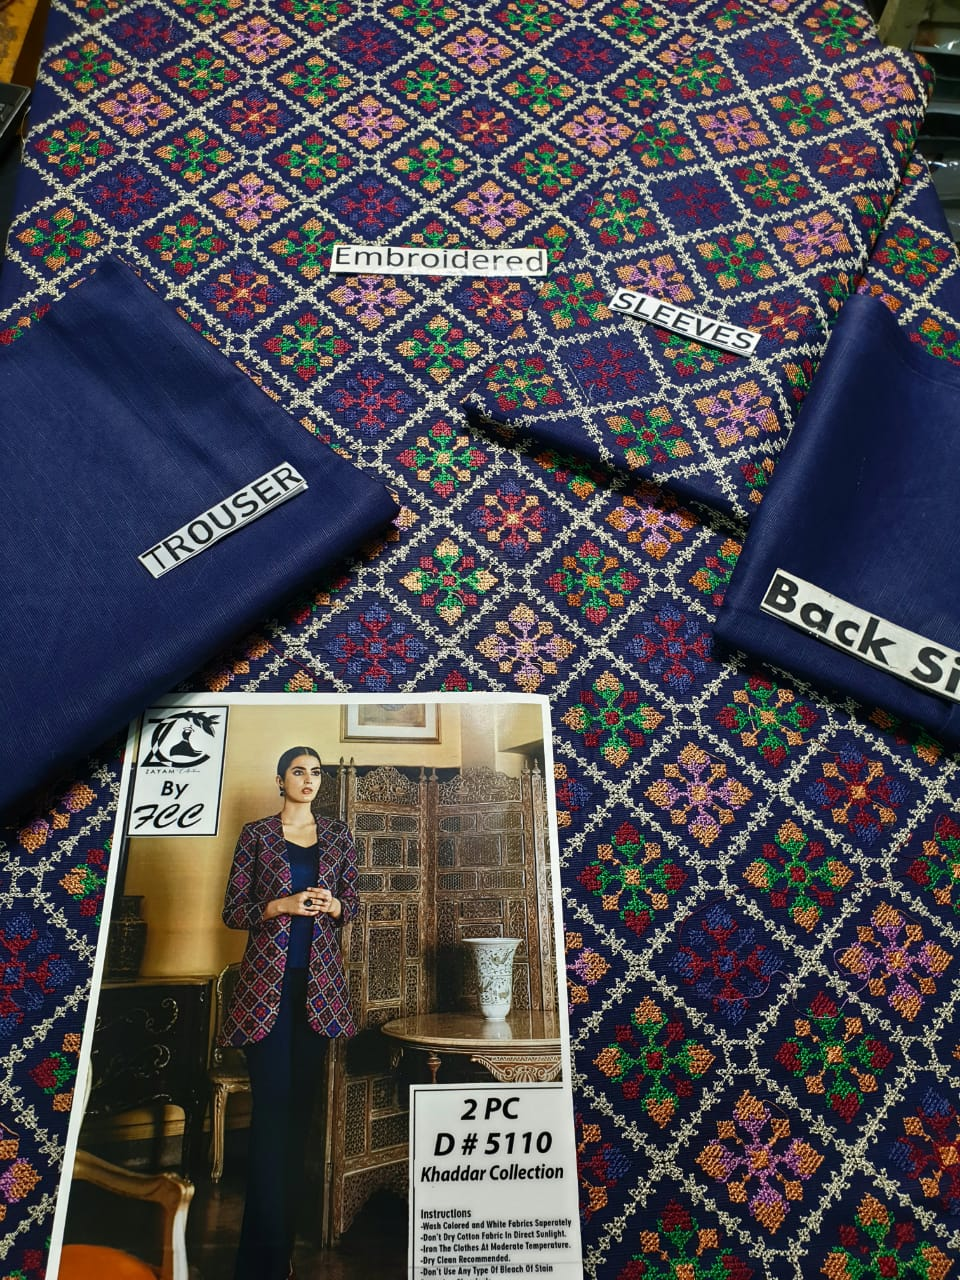 Bareeze FCC-5110 Blue (Khaddar) Embroidered two piece Khaddar Collection